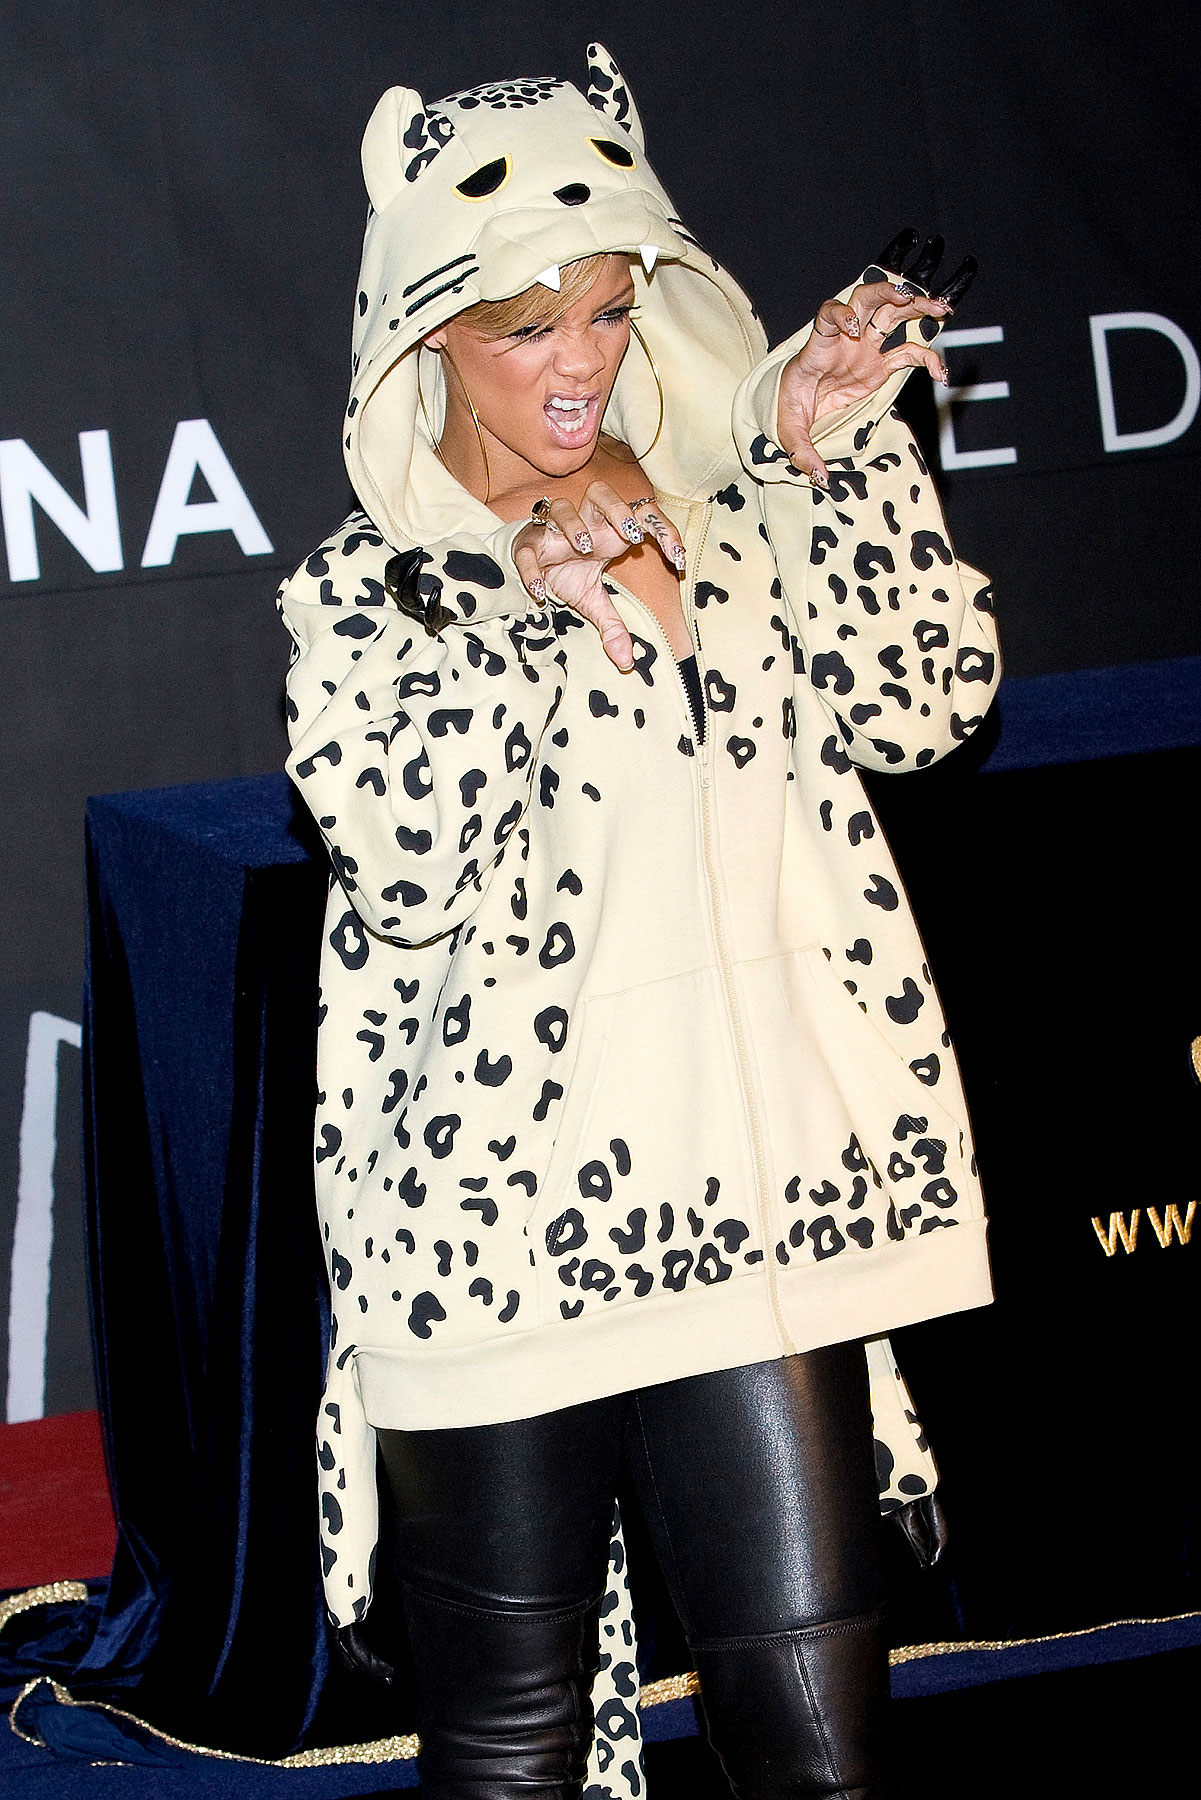 Hey, Rihanna Is Dressed Like a Giant Cat! (PHOTOS)